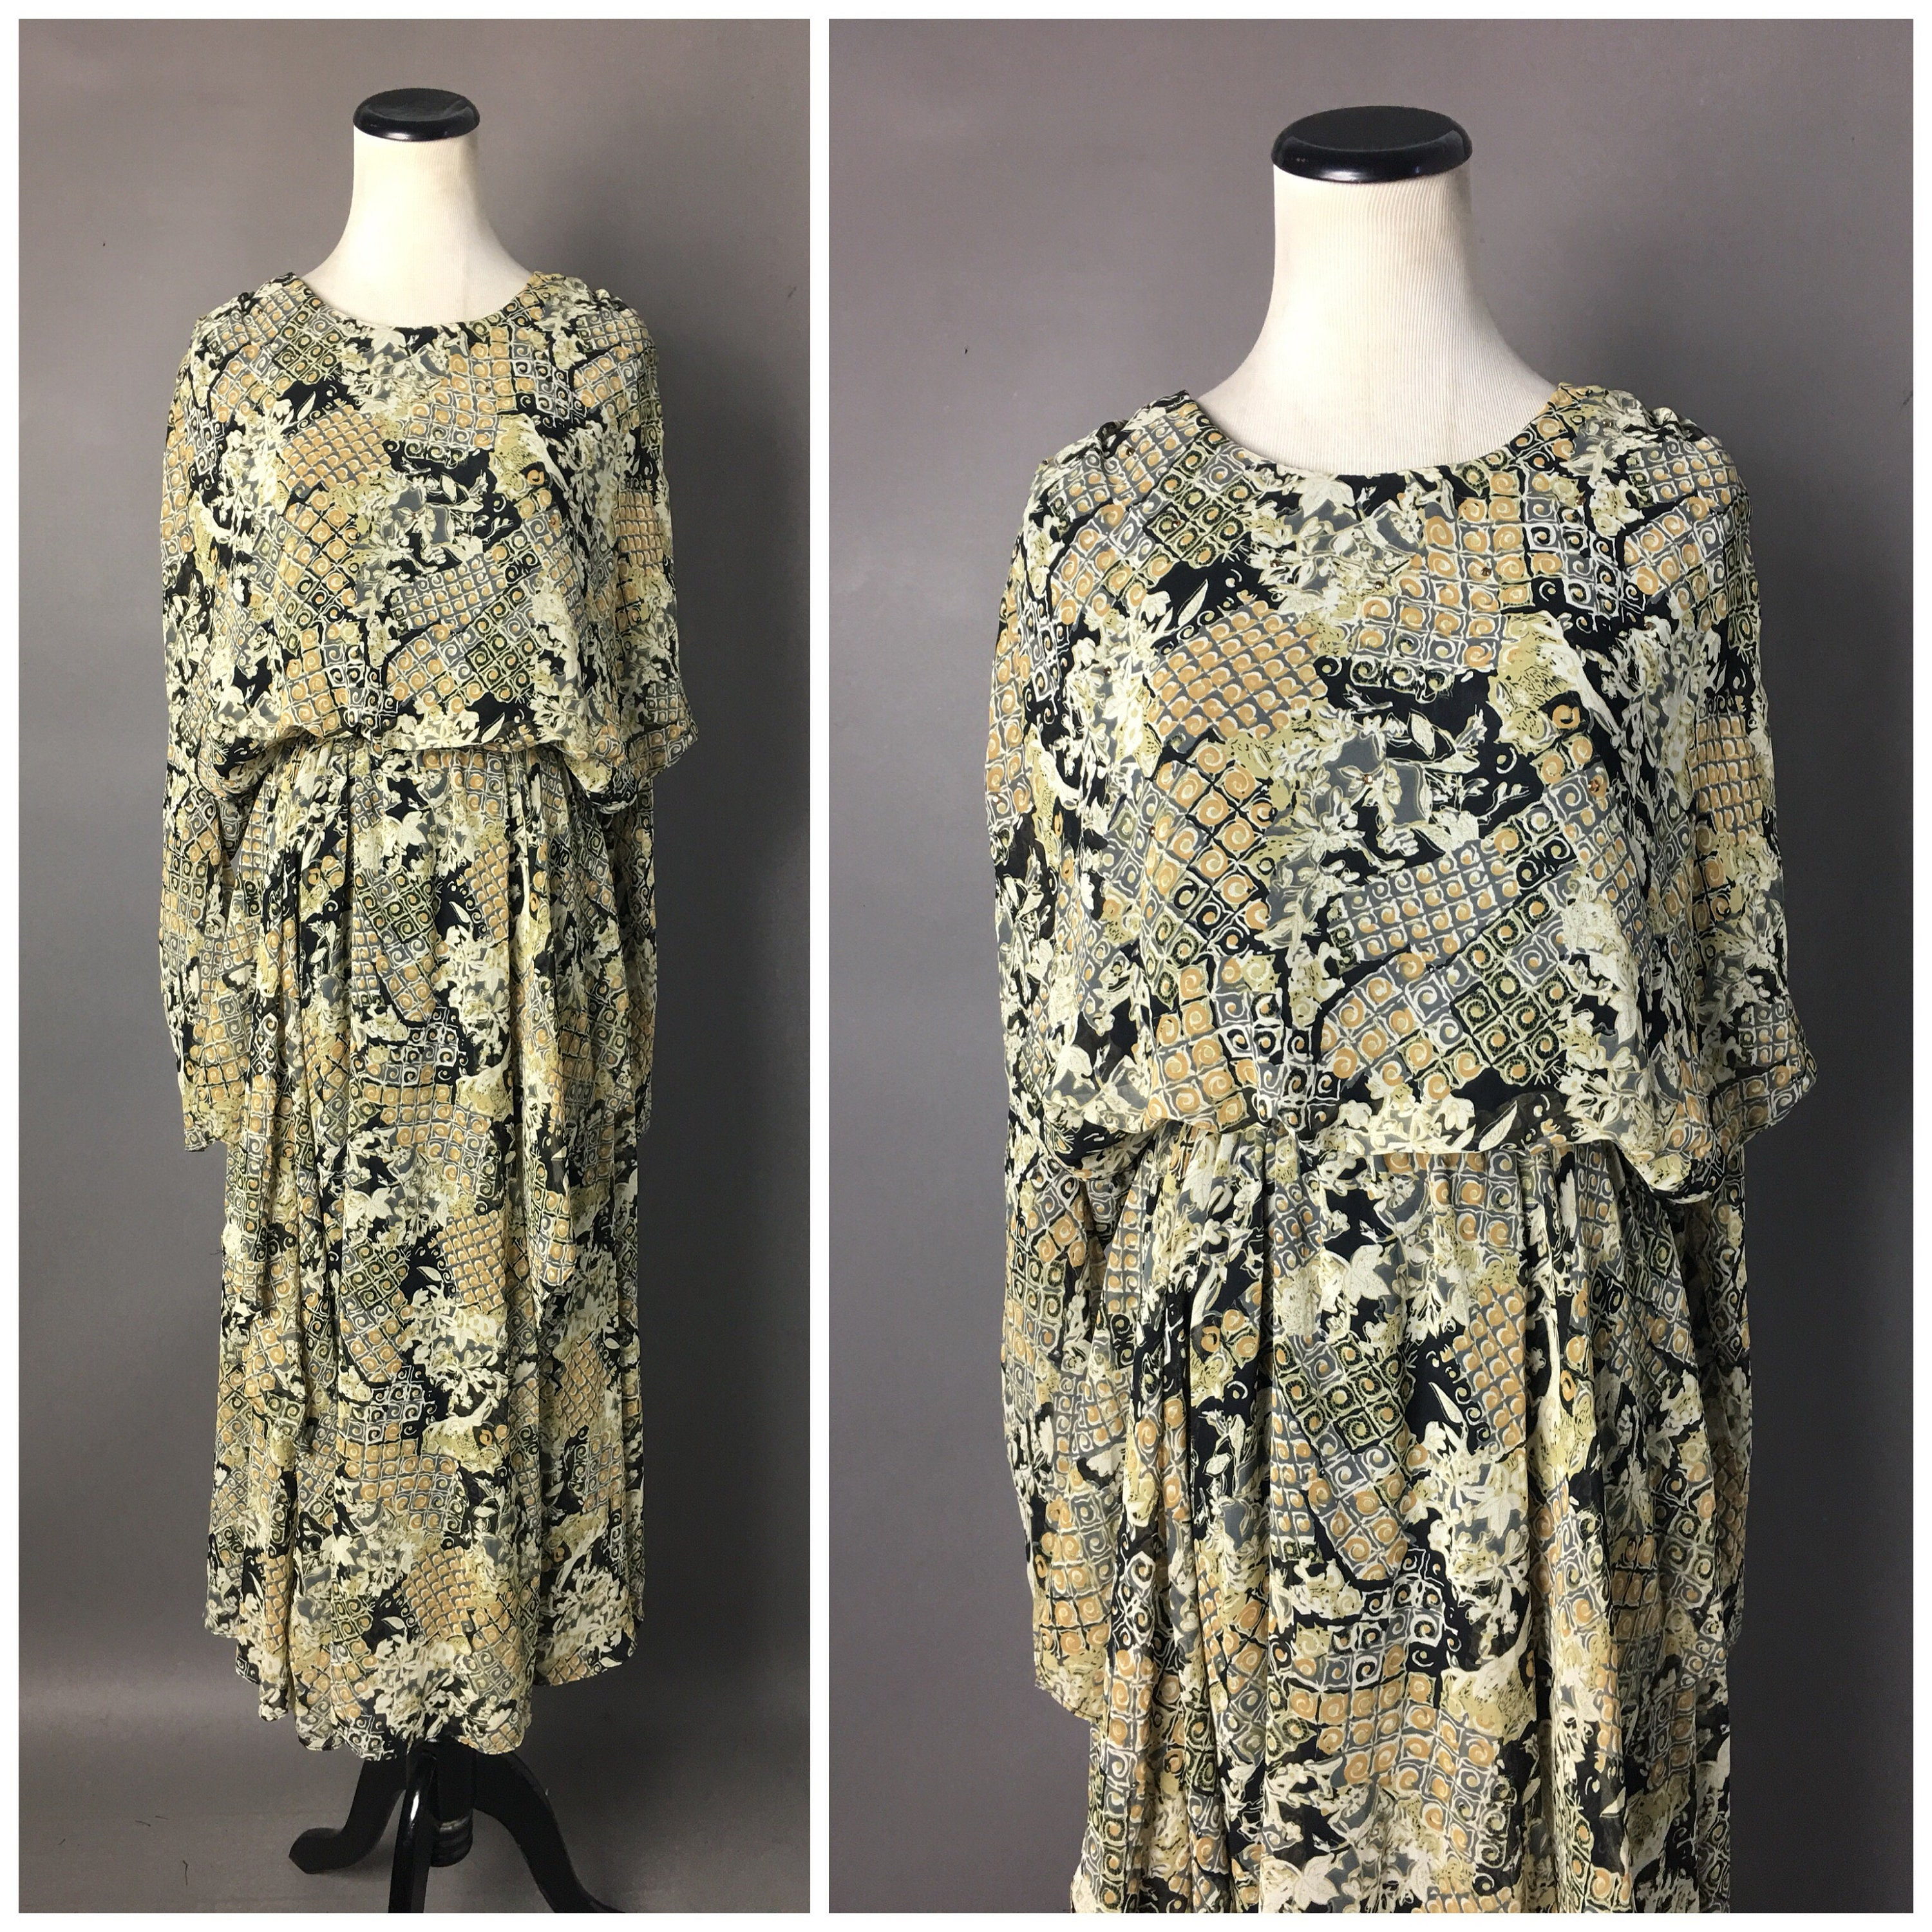 80s Dresses   Casual to Party Dresses Vintage 80S Does 20S Dress1980S Style Patchwork Cocktail Party Formal 3904 $22.00 AT vintagedancer.com